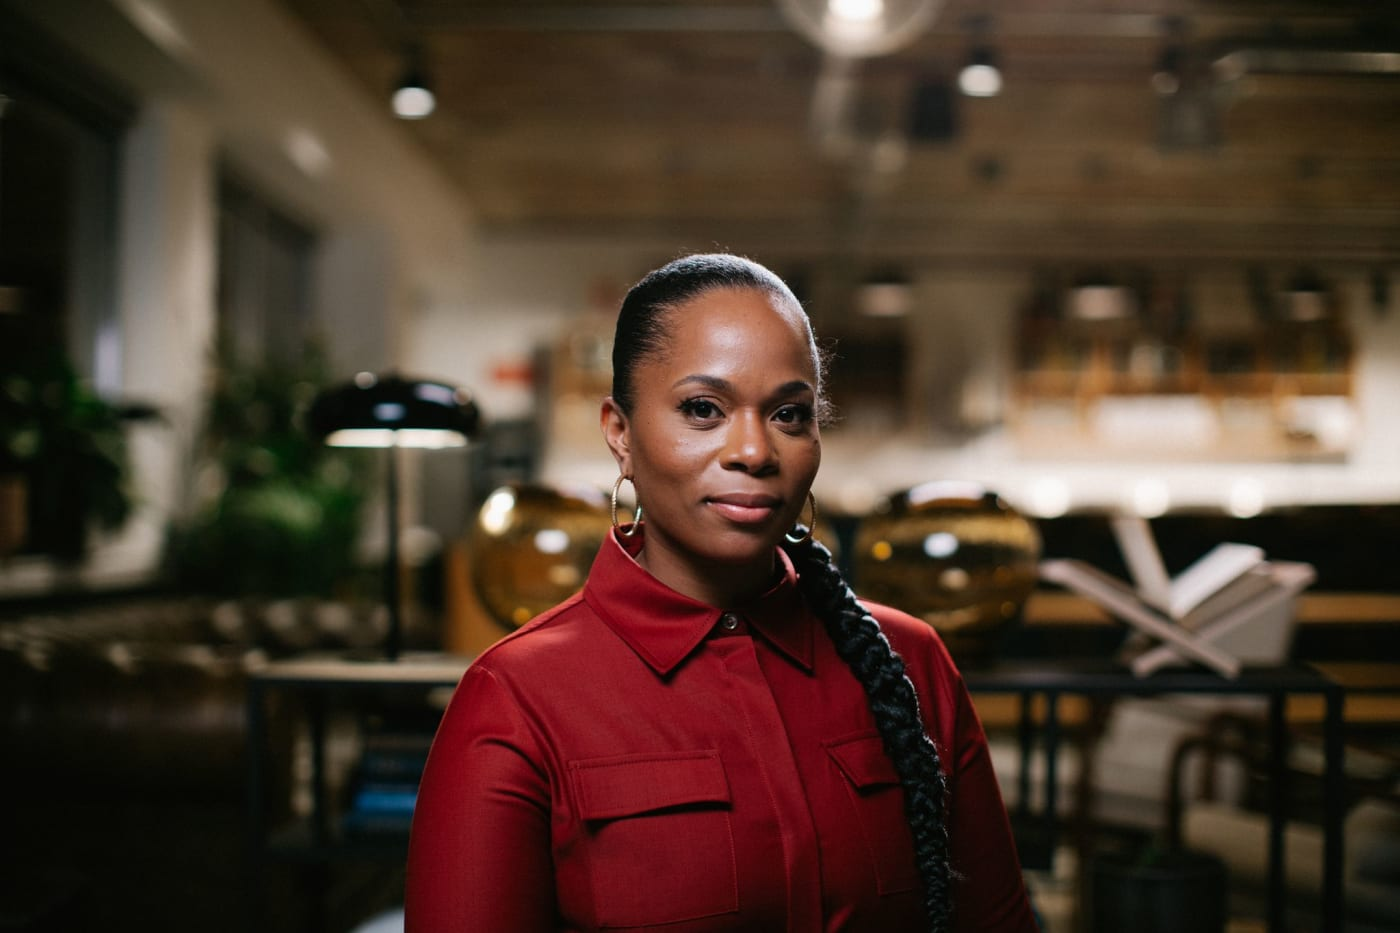 Charisse Beaumont, Black Lives In Music CEO